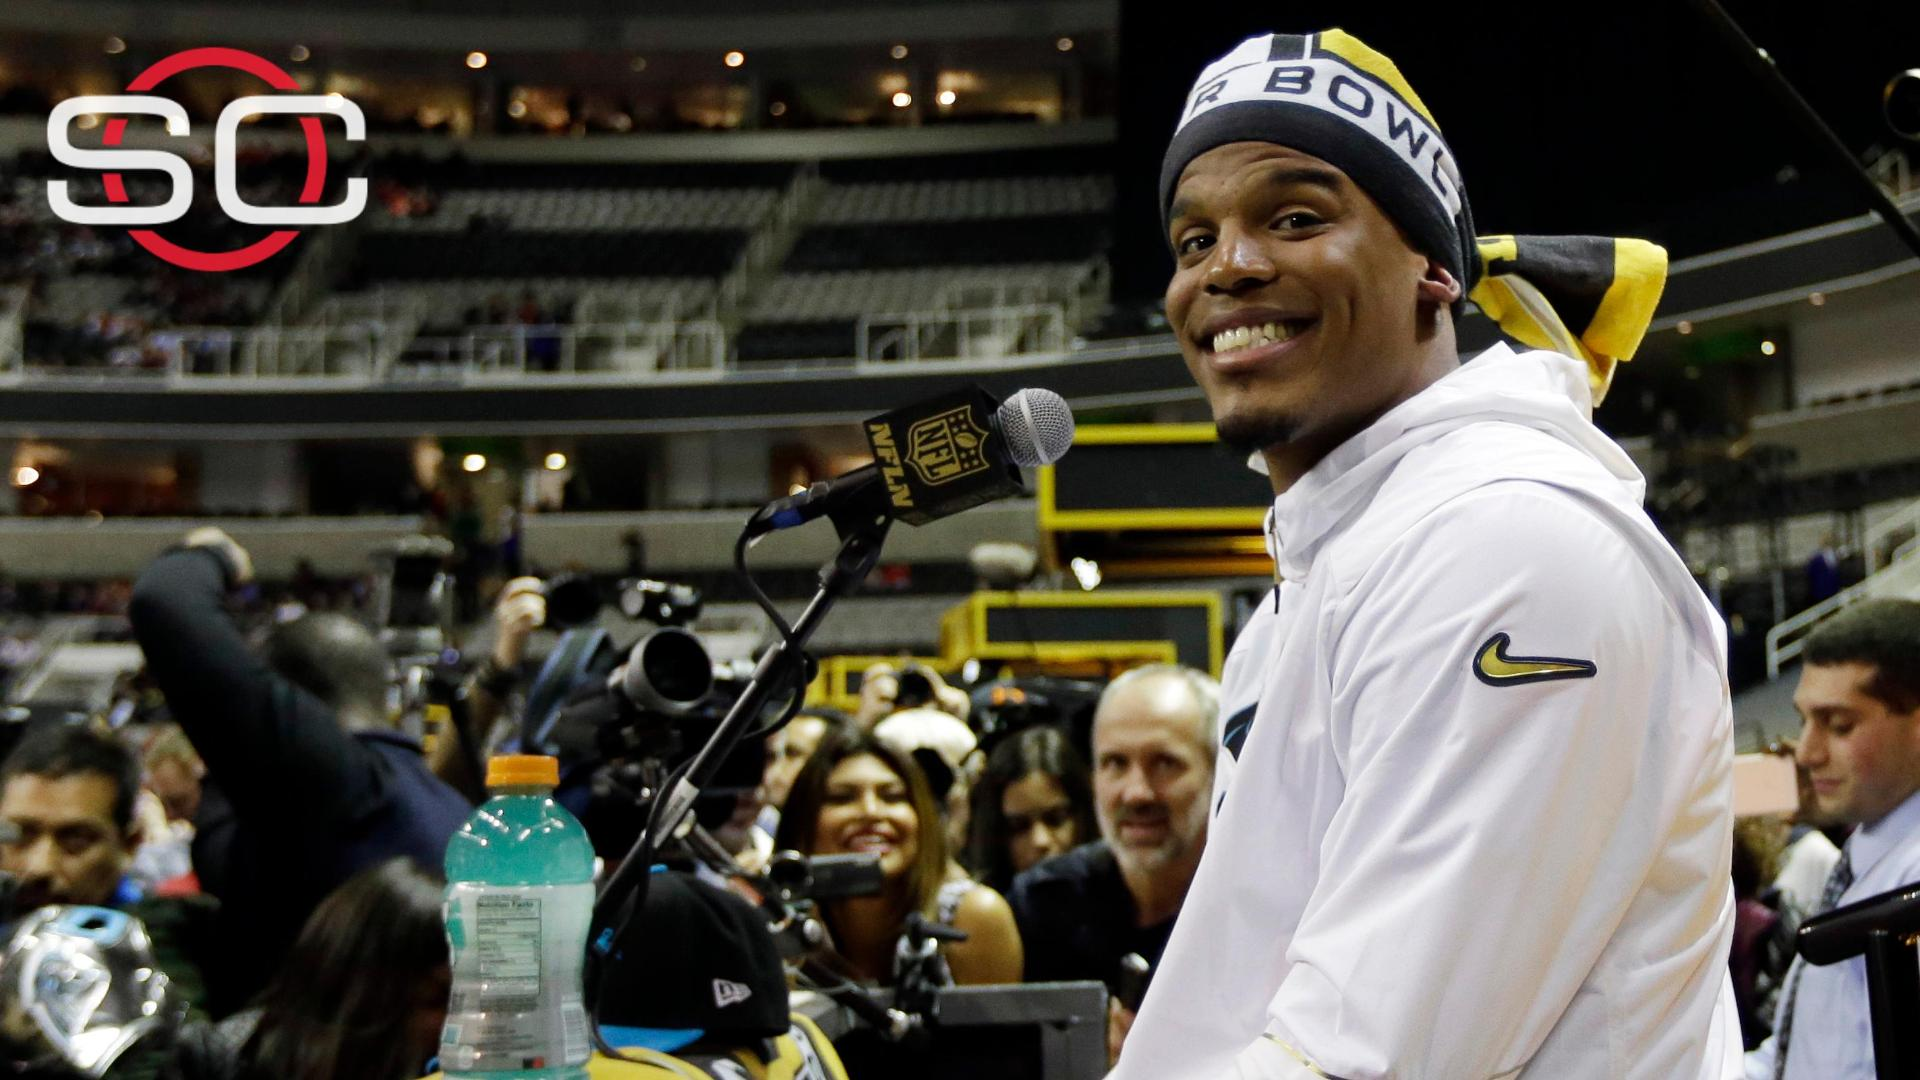 Cam Newton is odds-on favorite in Vegas to win Super Bowl ...